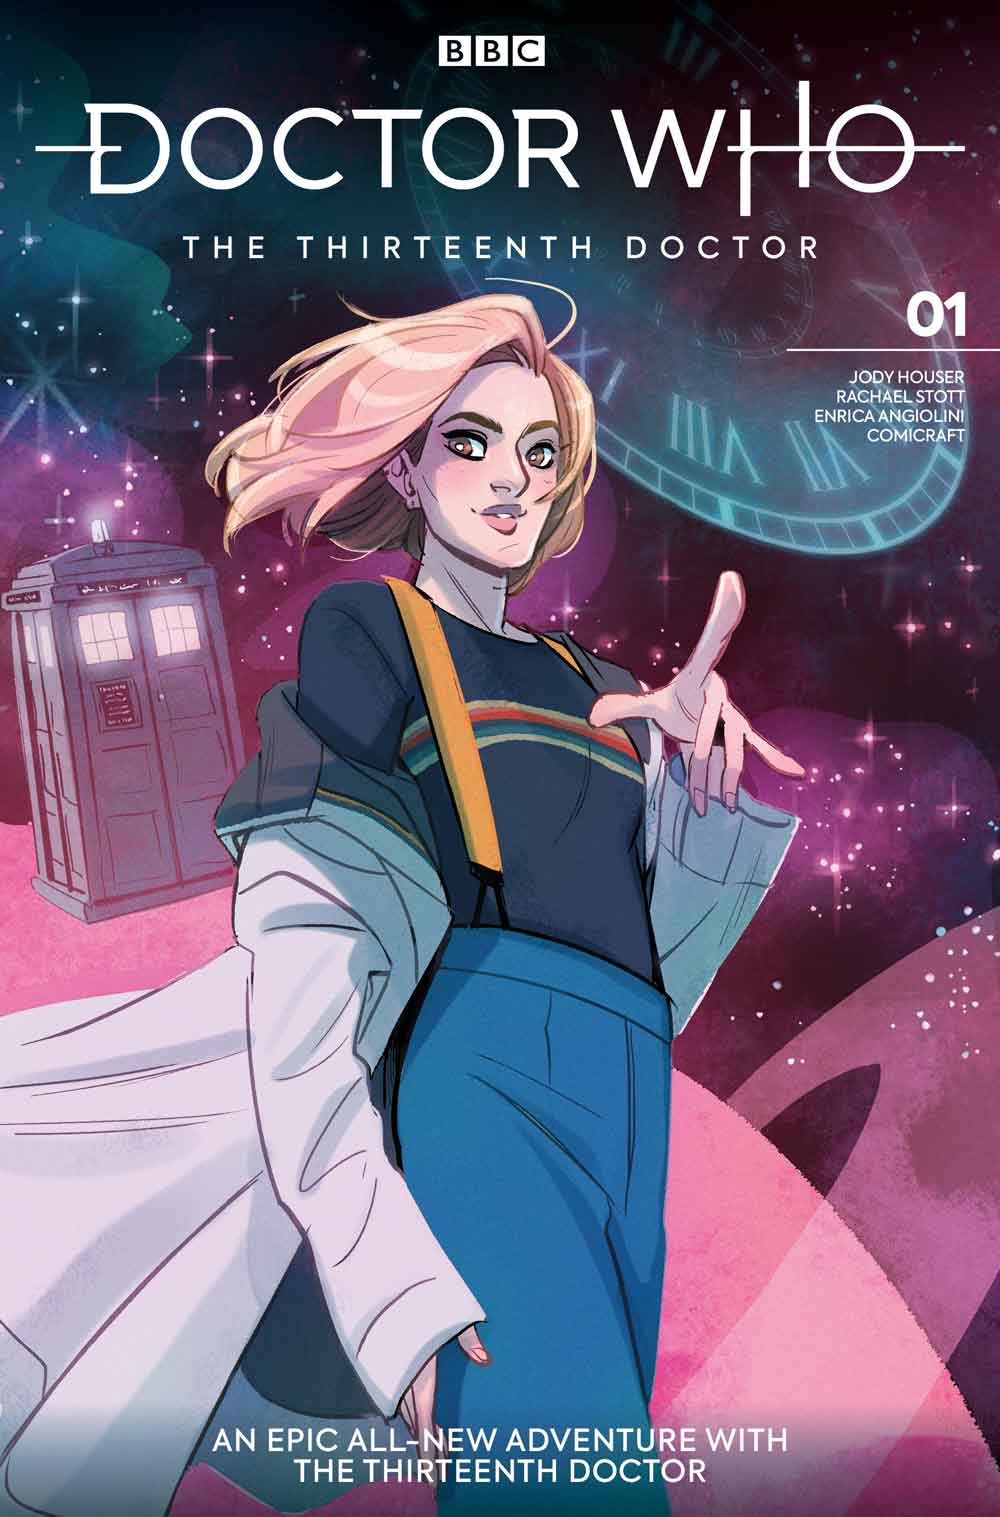 Thirteenth Doctor #1 - Cover A - Babs Tarr (Credit: Titan )